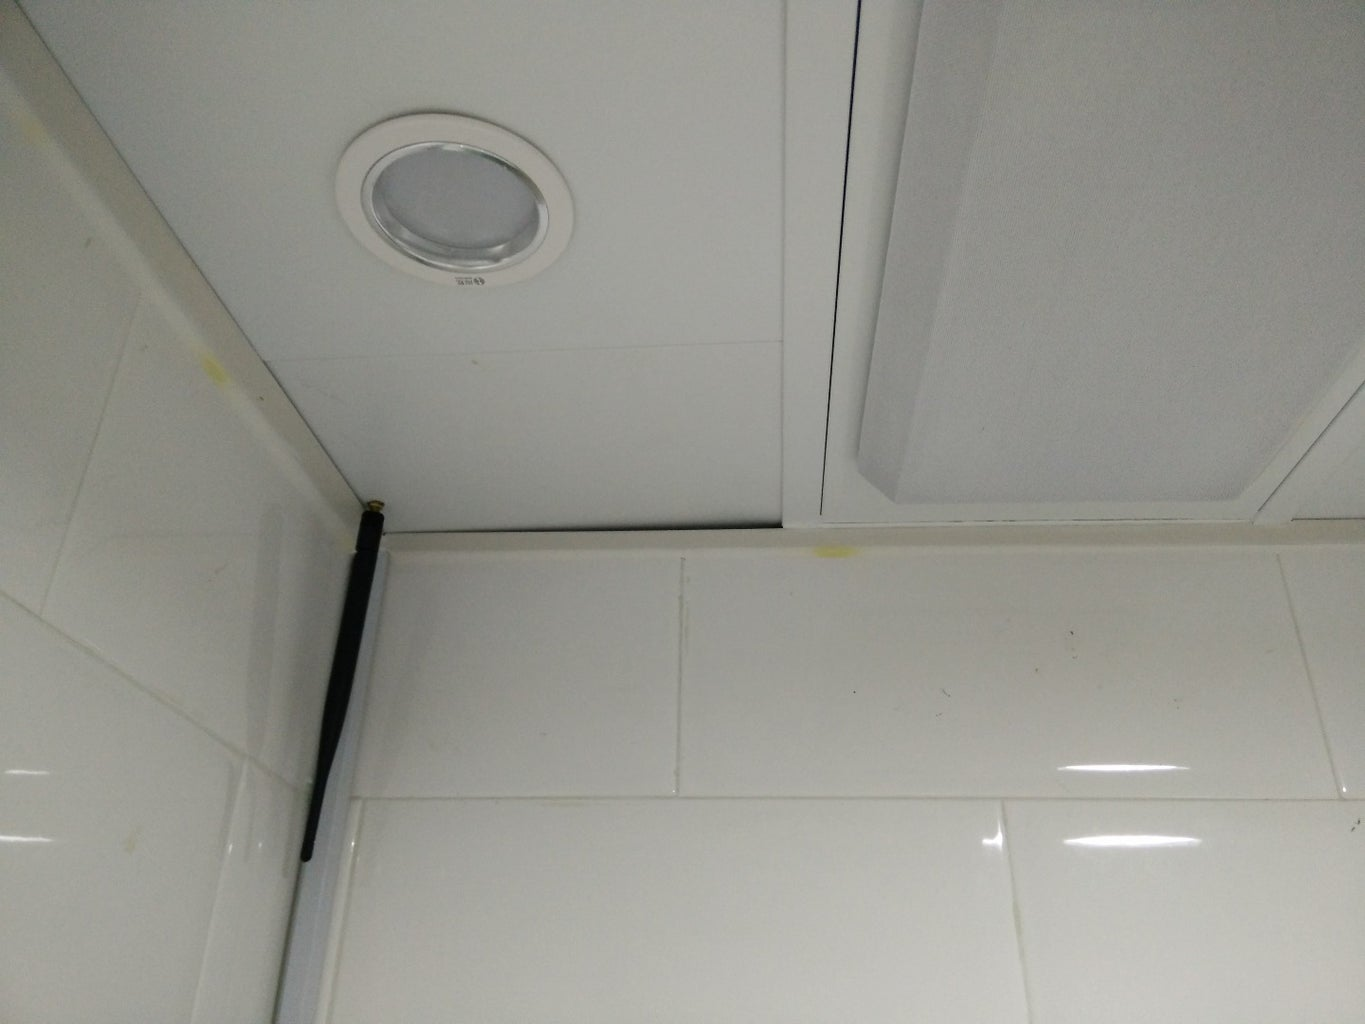 Step 4: Cover Up the Drop Ceiling